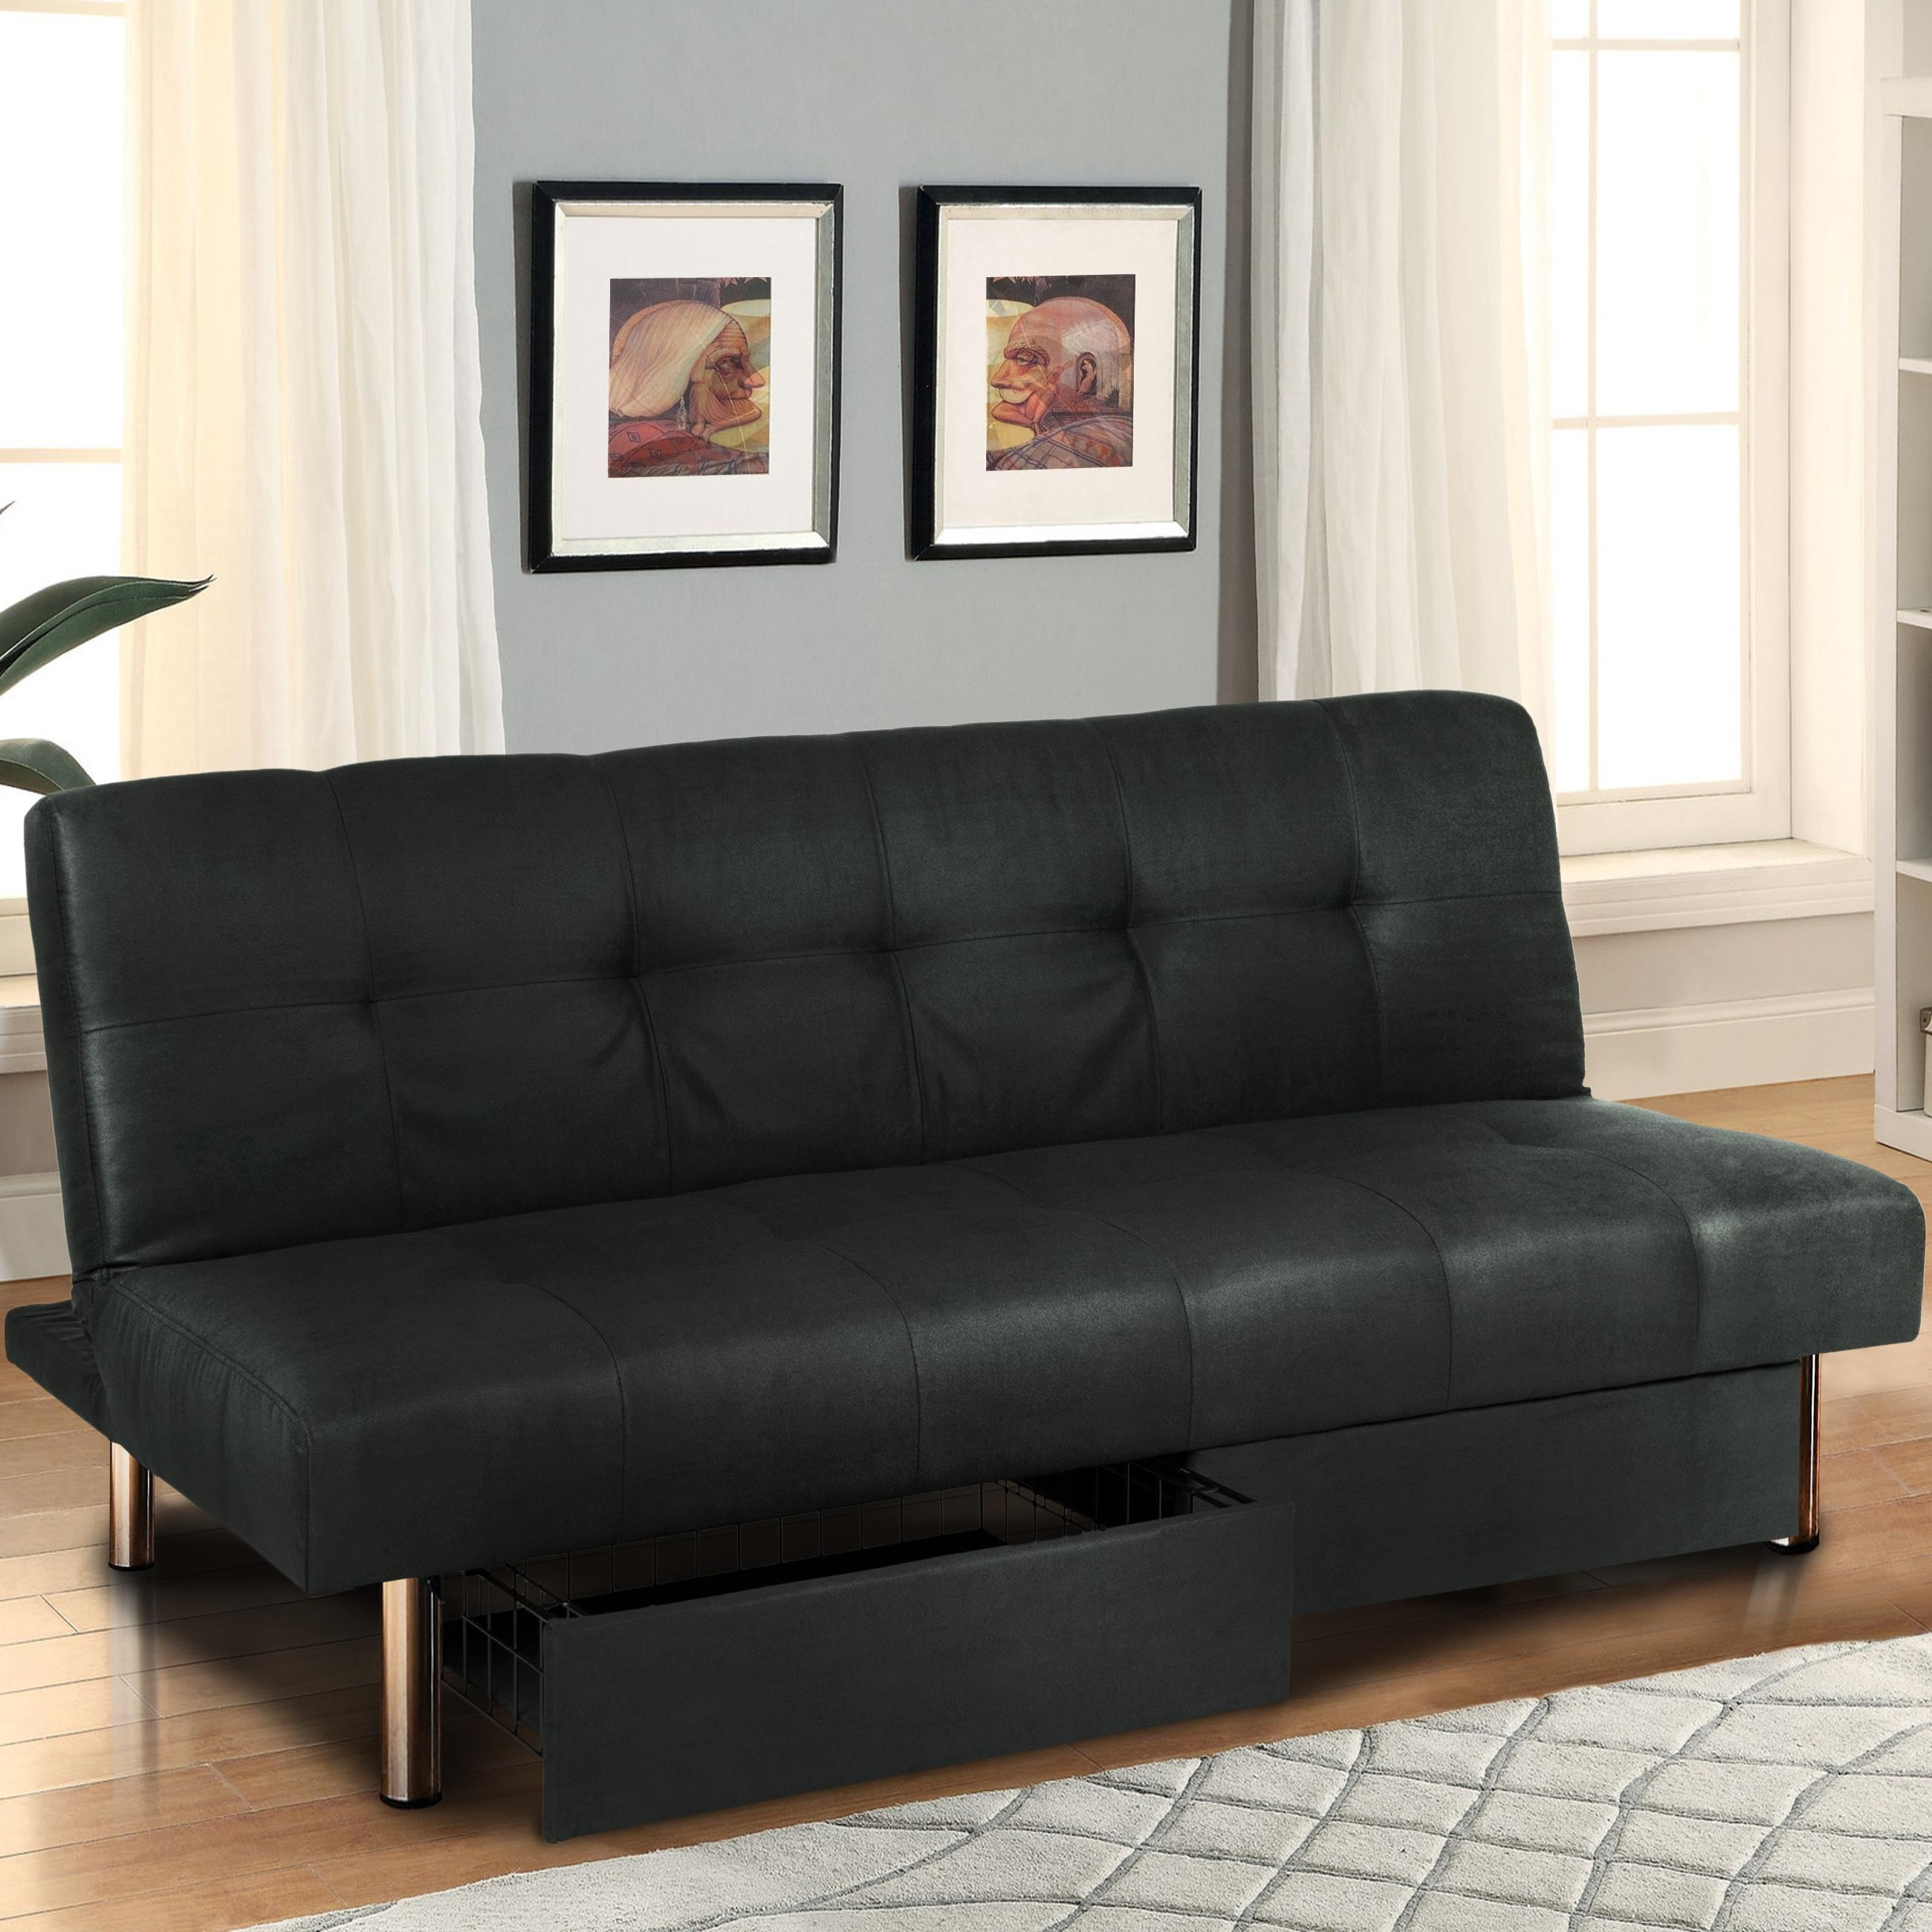 Best Choice Products Modern Entertainment Futon Sofa Bed Fold Up Regarding Convertible Futon Sofa Beds (View 8 of 20)